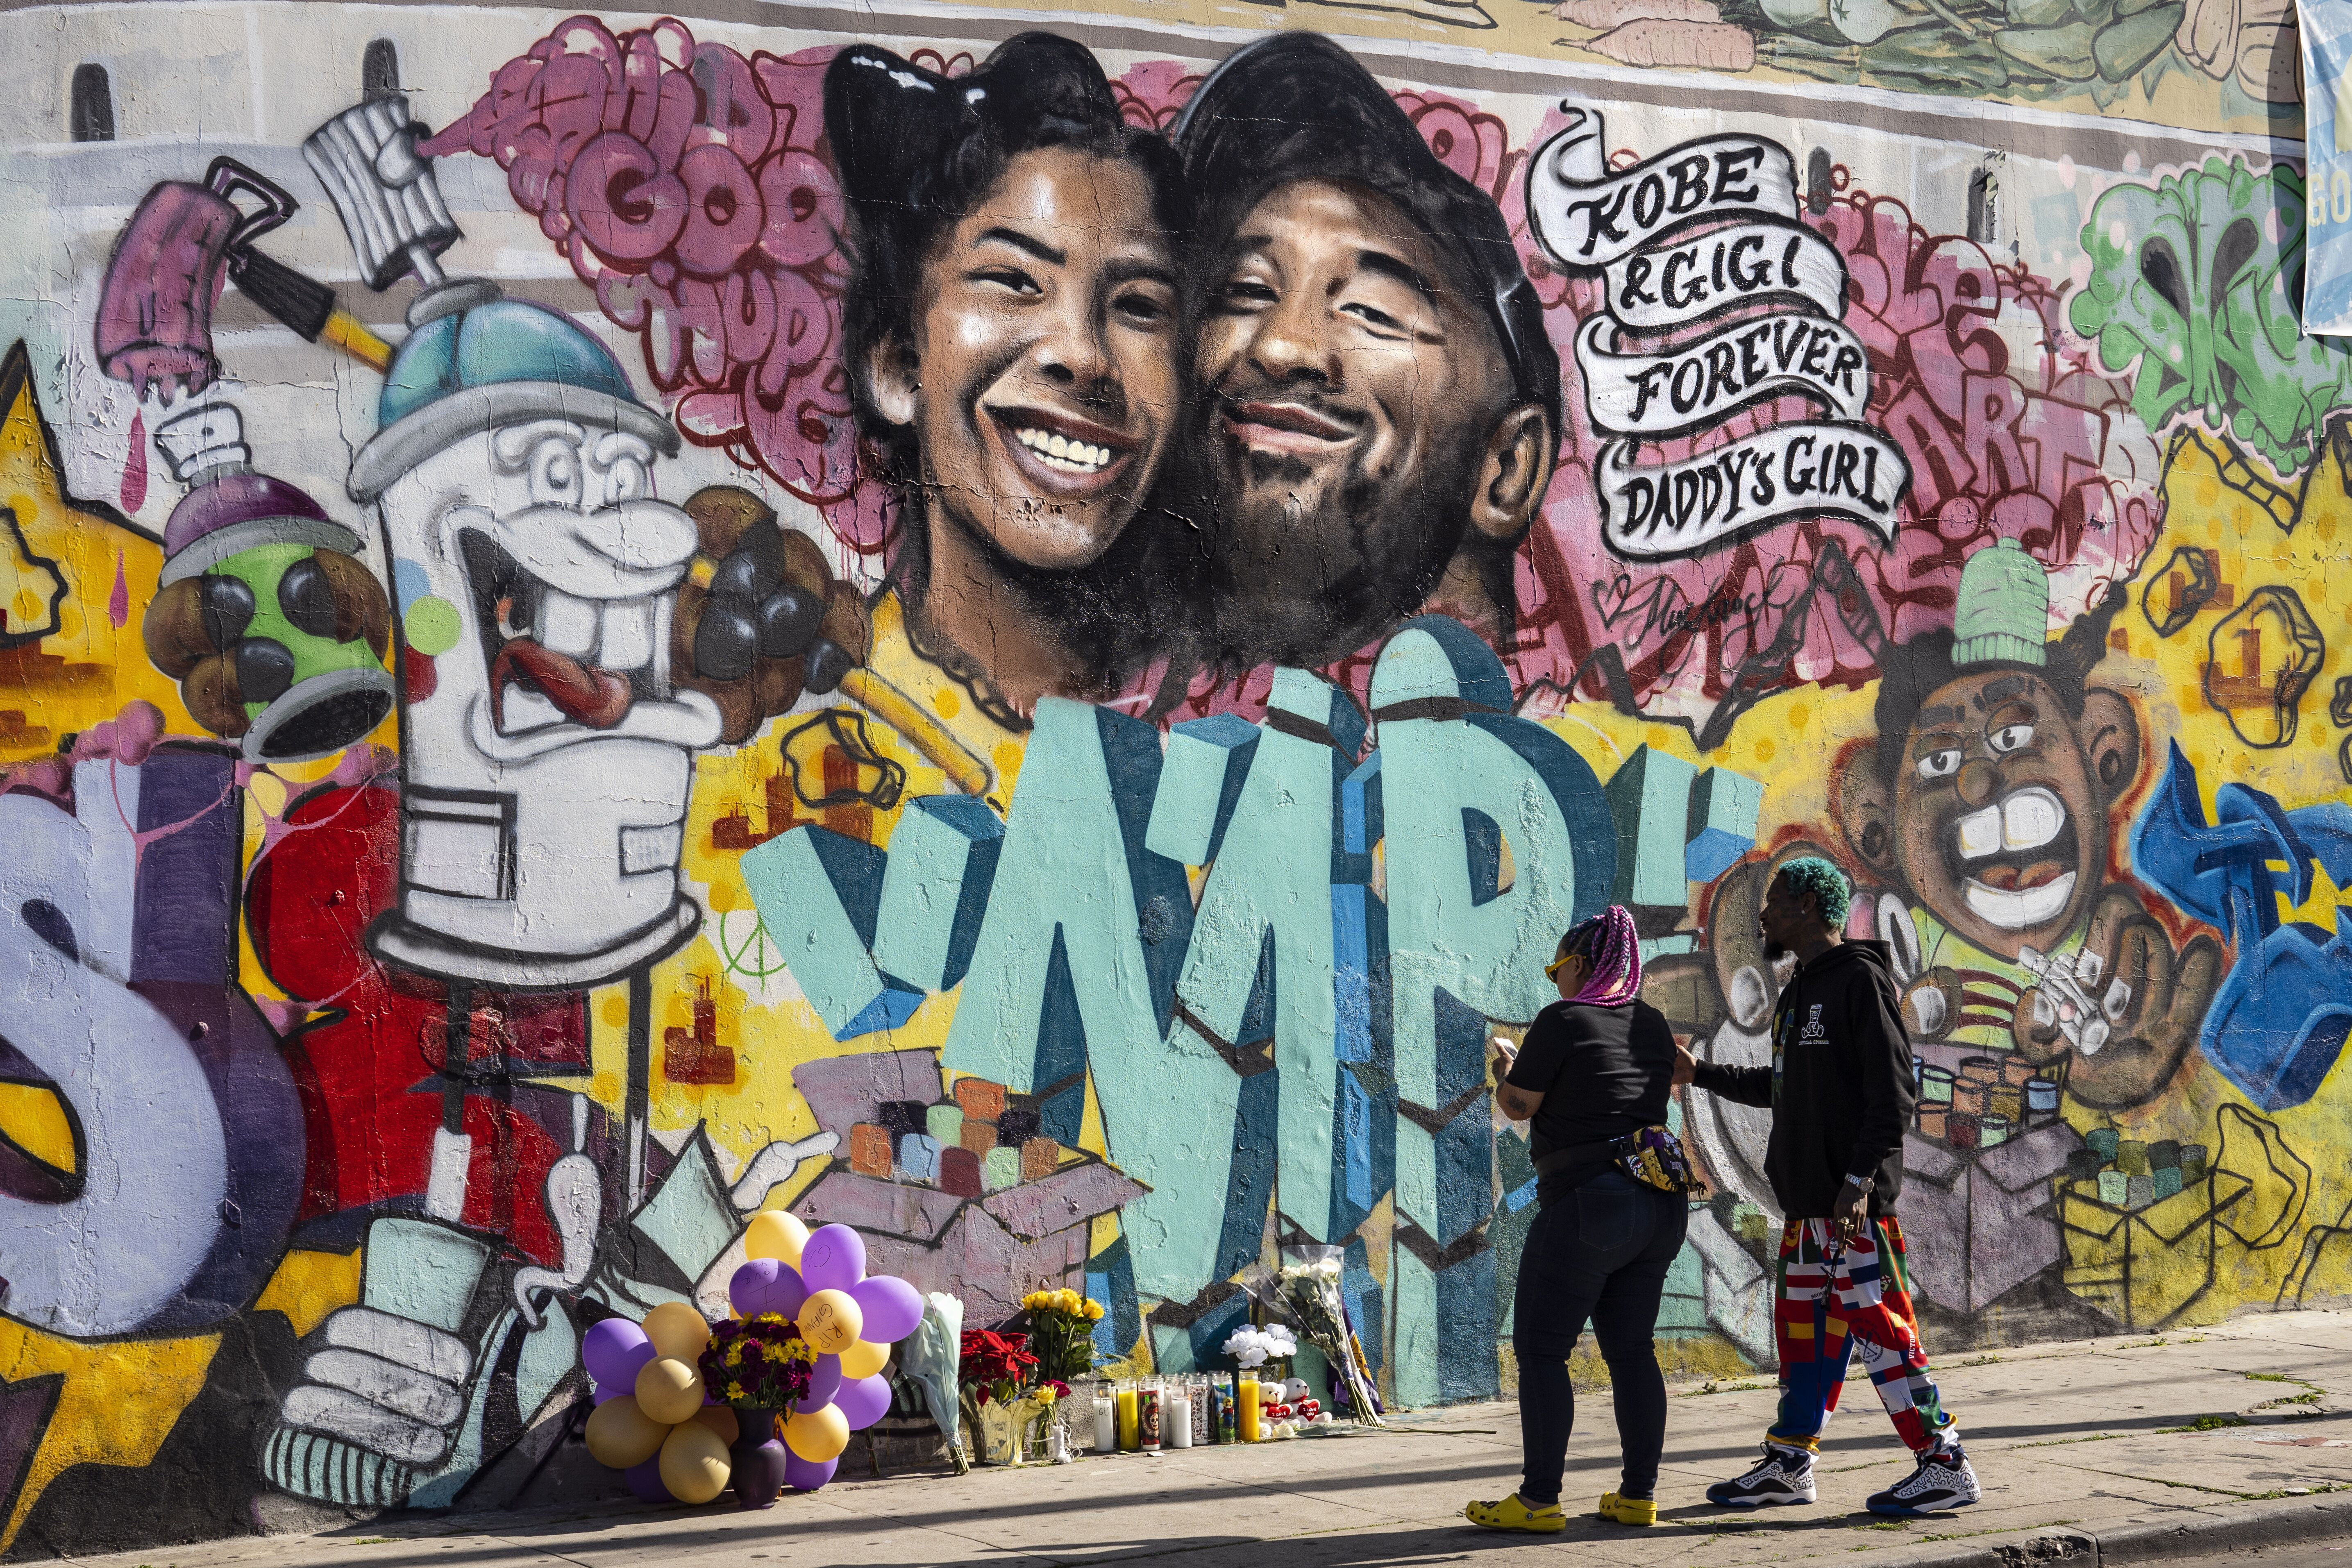 Mural by the artists Muck Rock and Mr79lts showing Kobe Bryant and his daughter Gianna Bryant/ Source: Getty Images